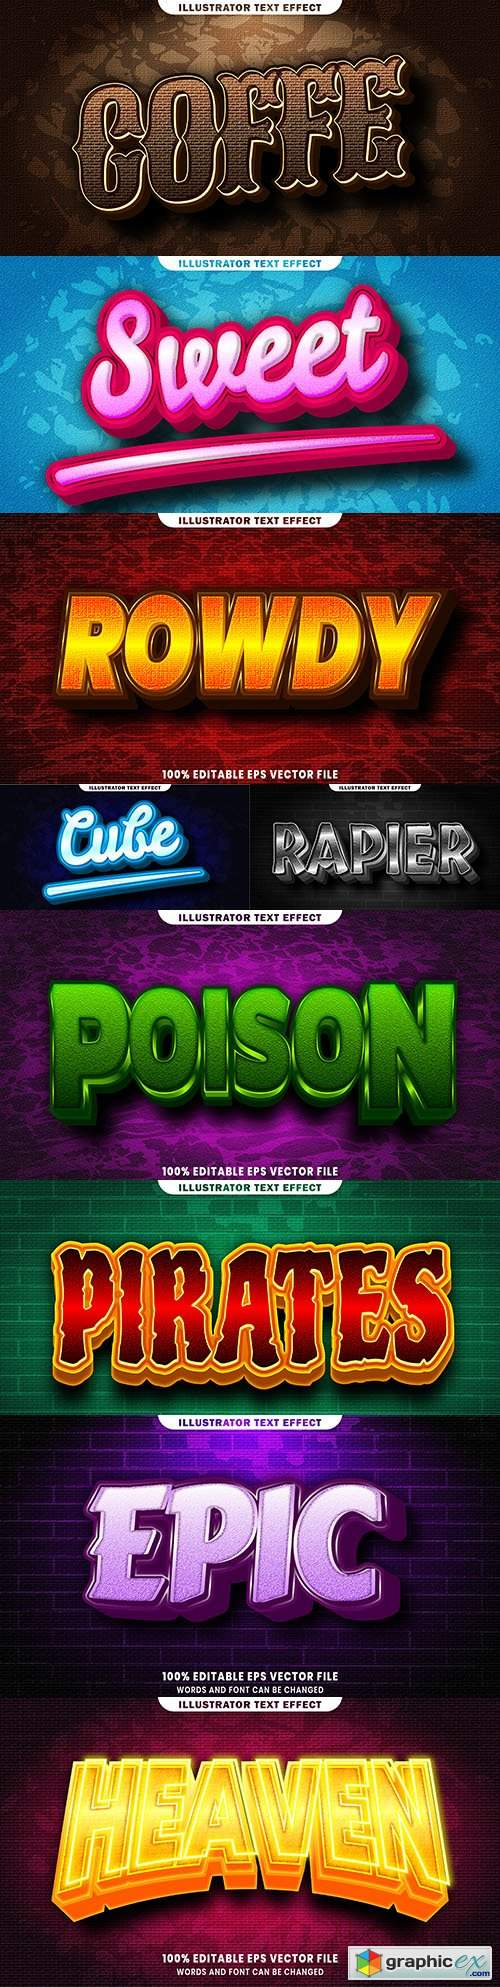 Editable font and 3d effect text design collection illustration 75